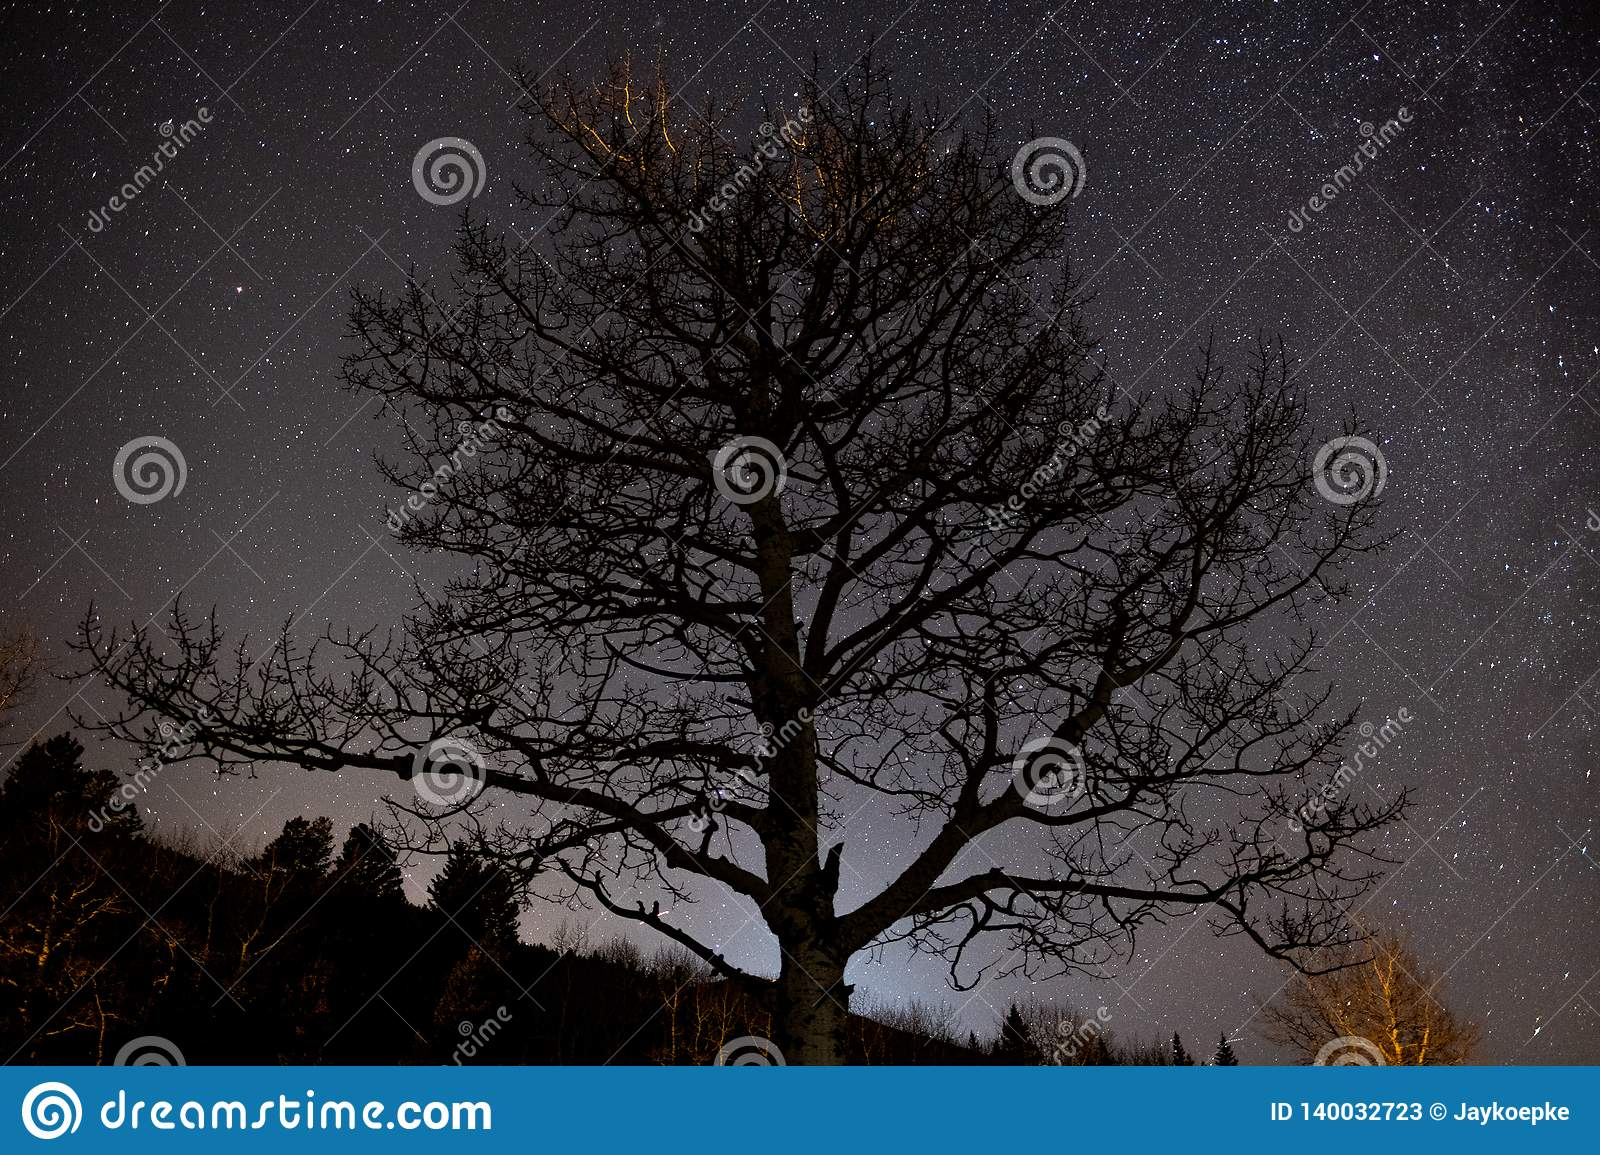 Stars shine behind an aspen tree in winter